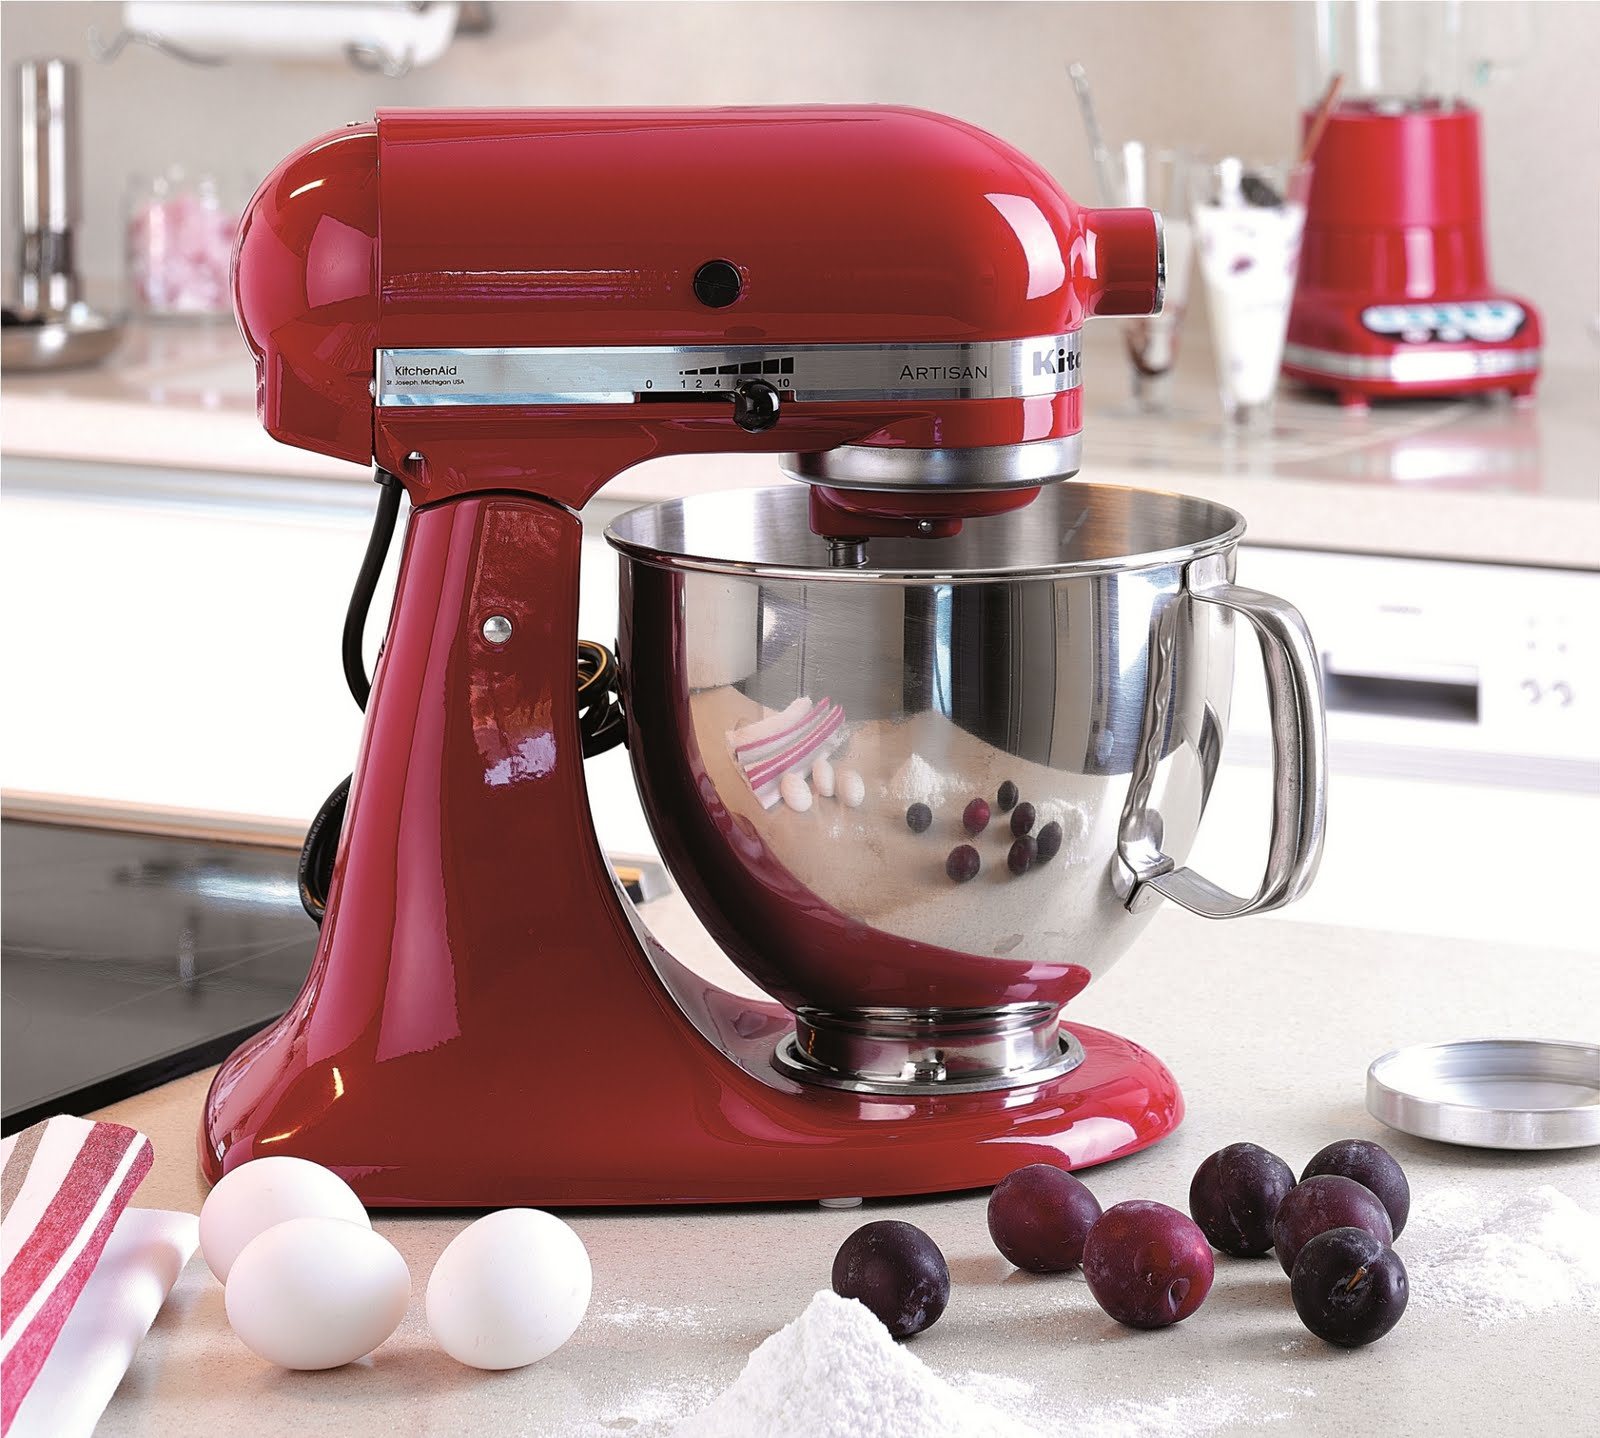 kitchen aid attachments countertop choices kitchenaid's artisan stand mixer | design corner